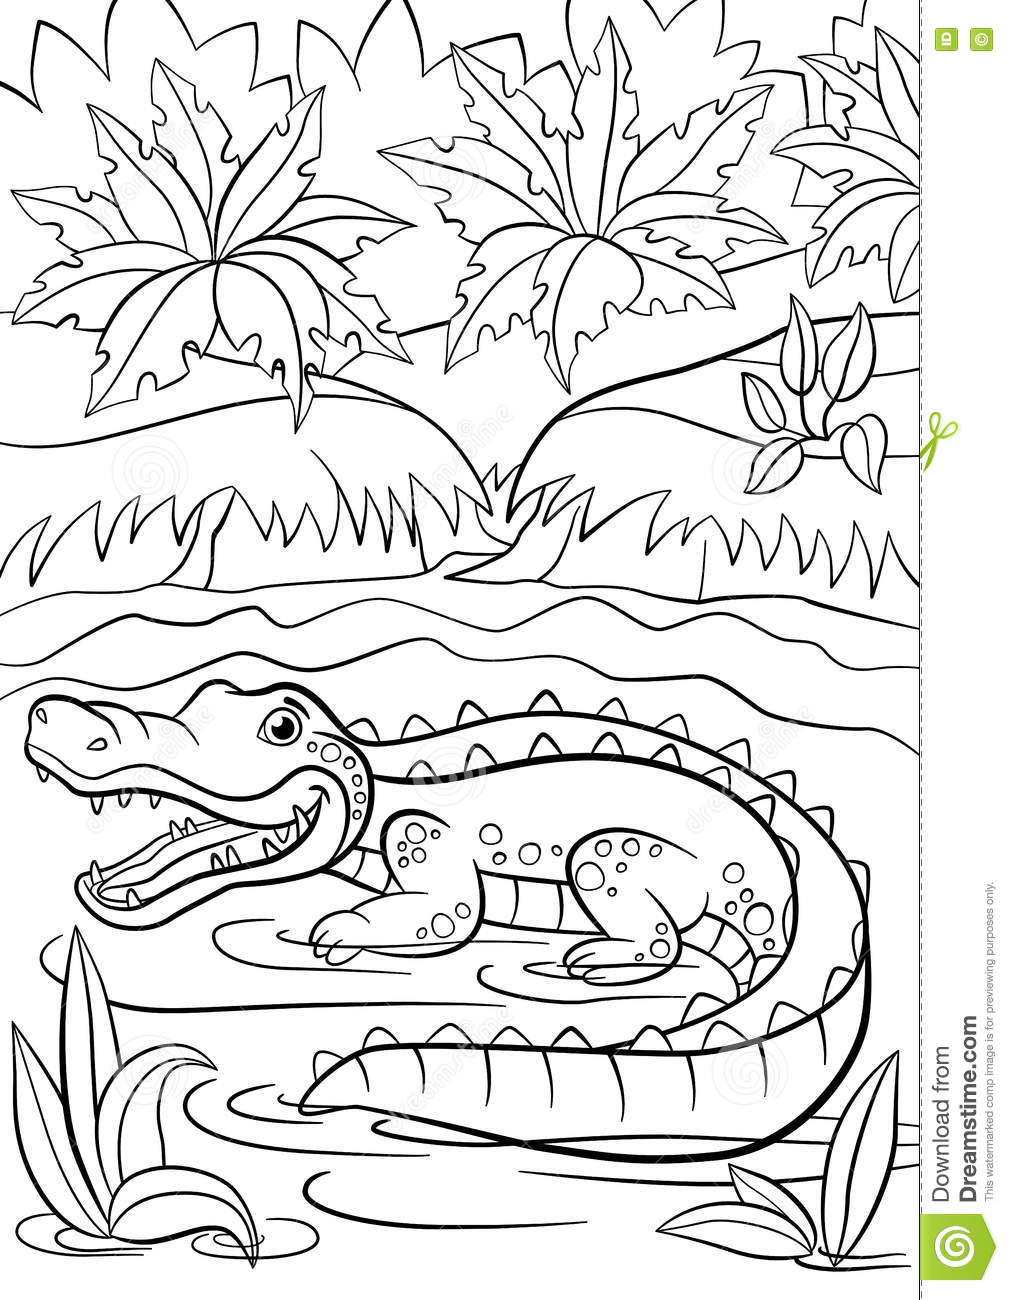 Coloring Pages. Animals. Little Cute Alligator Sits In The